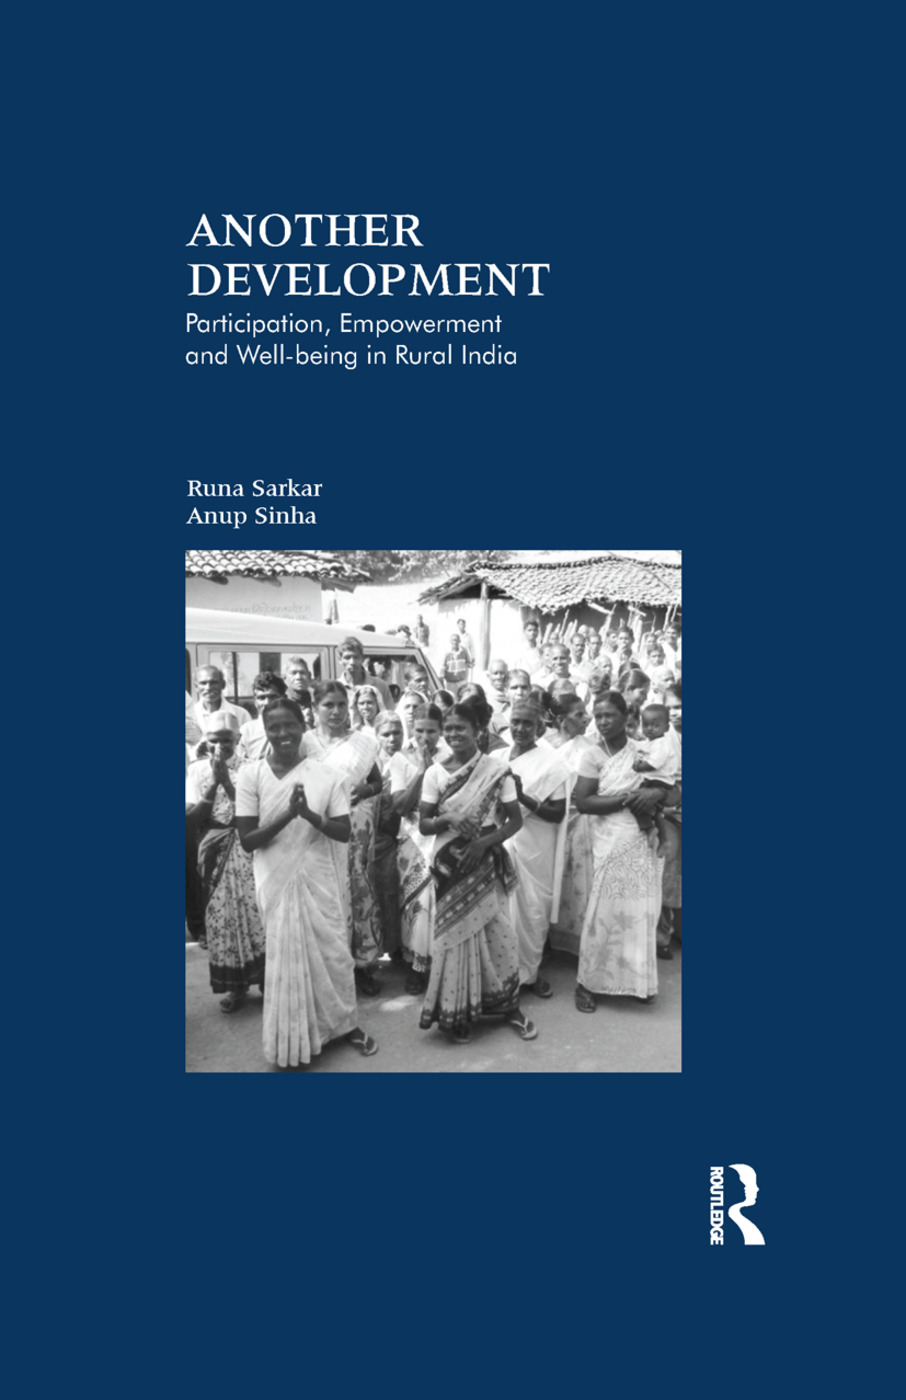 Another Development: Participation, Empowerment and Well-being in Rural India book cover